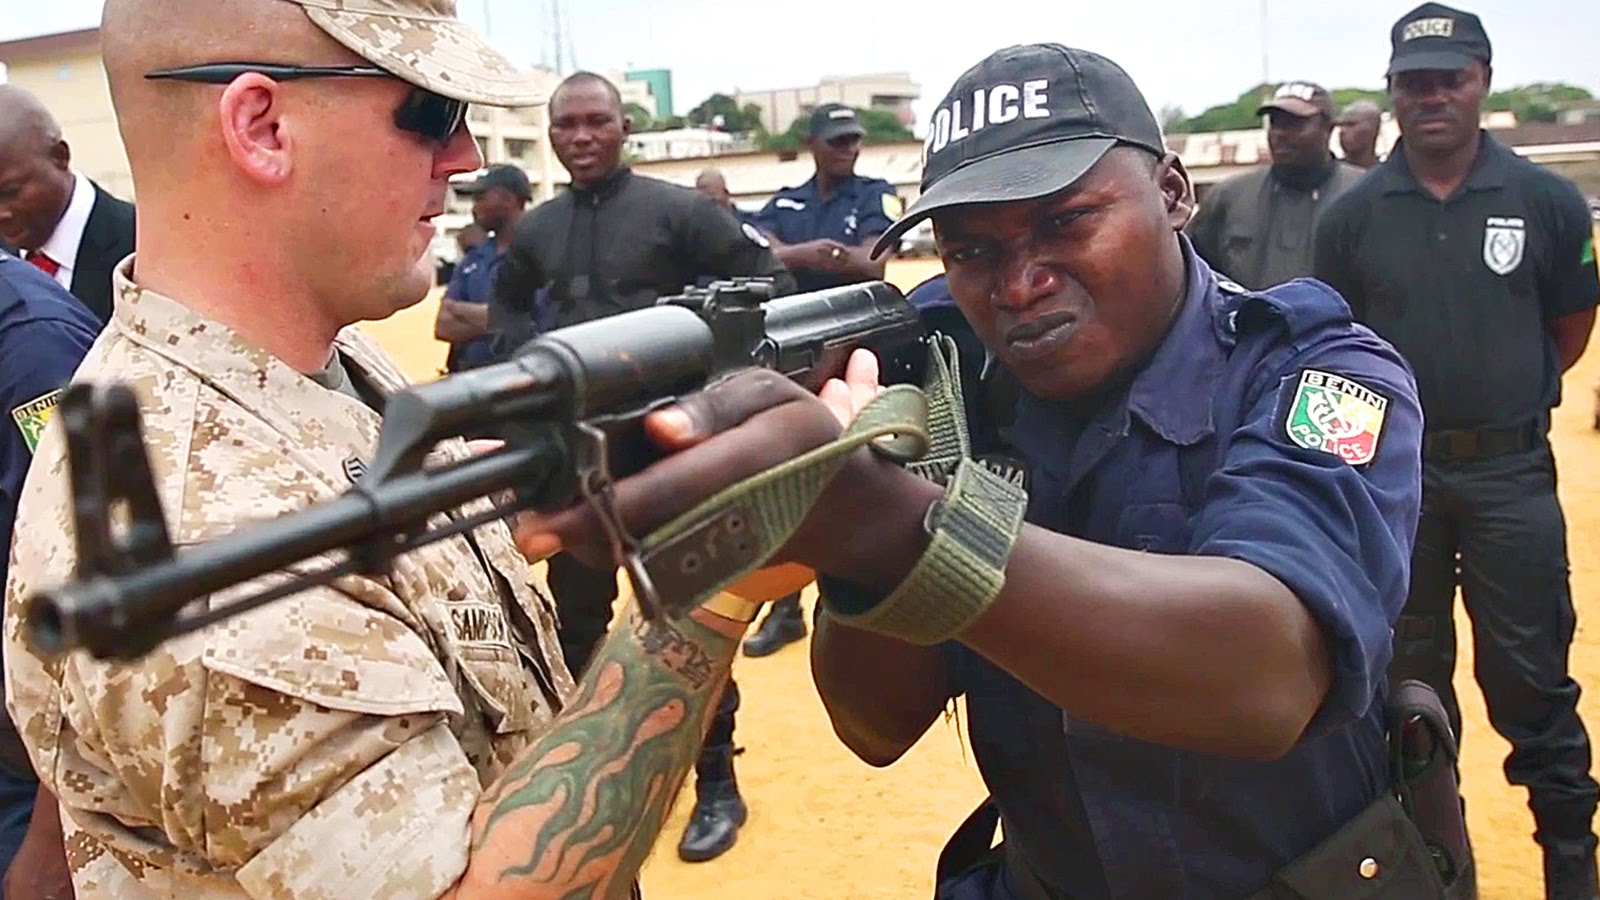 US Marines Teach Tactics To Benin Police In Africa